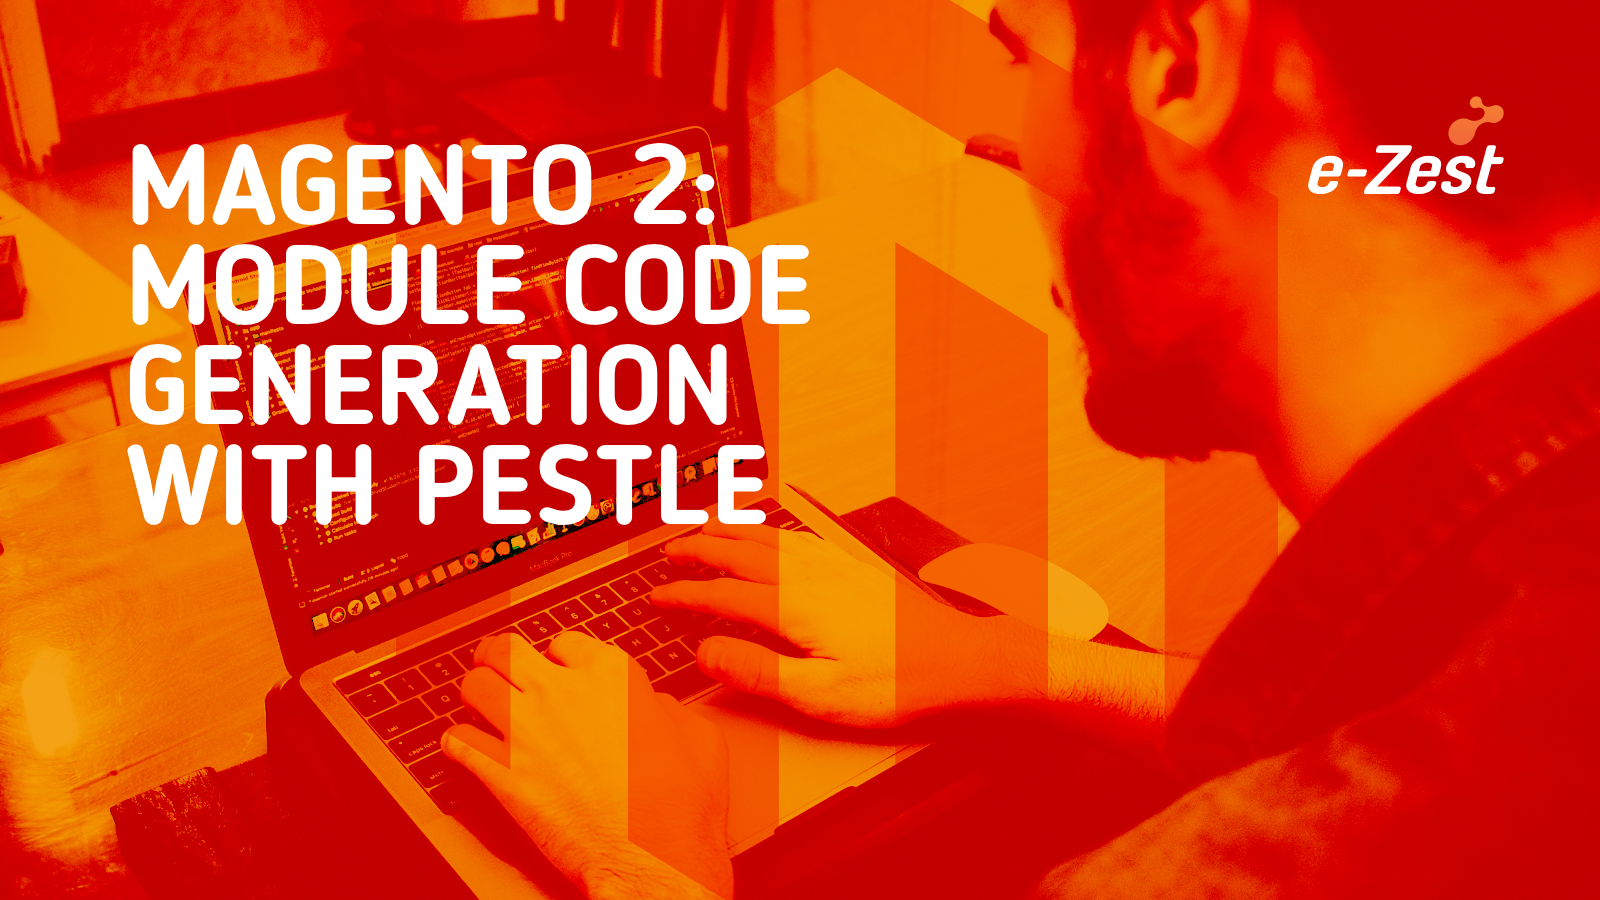 Magento 2: Module Code Generation with Pestle